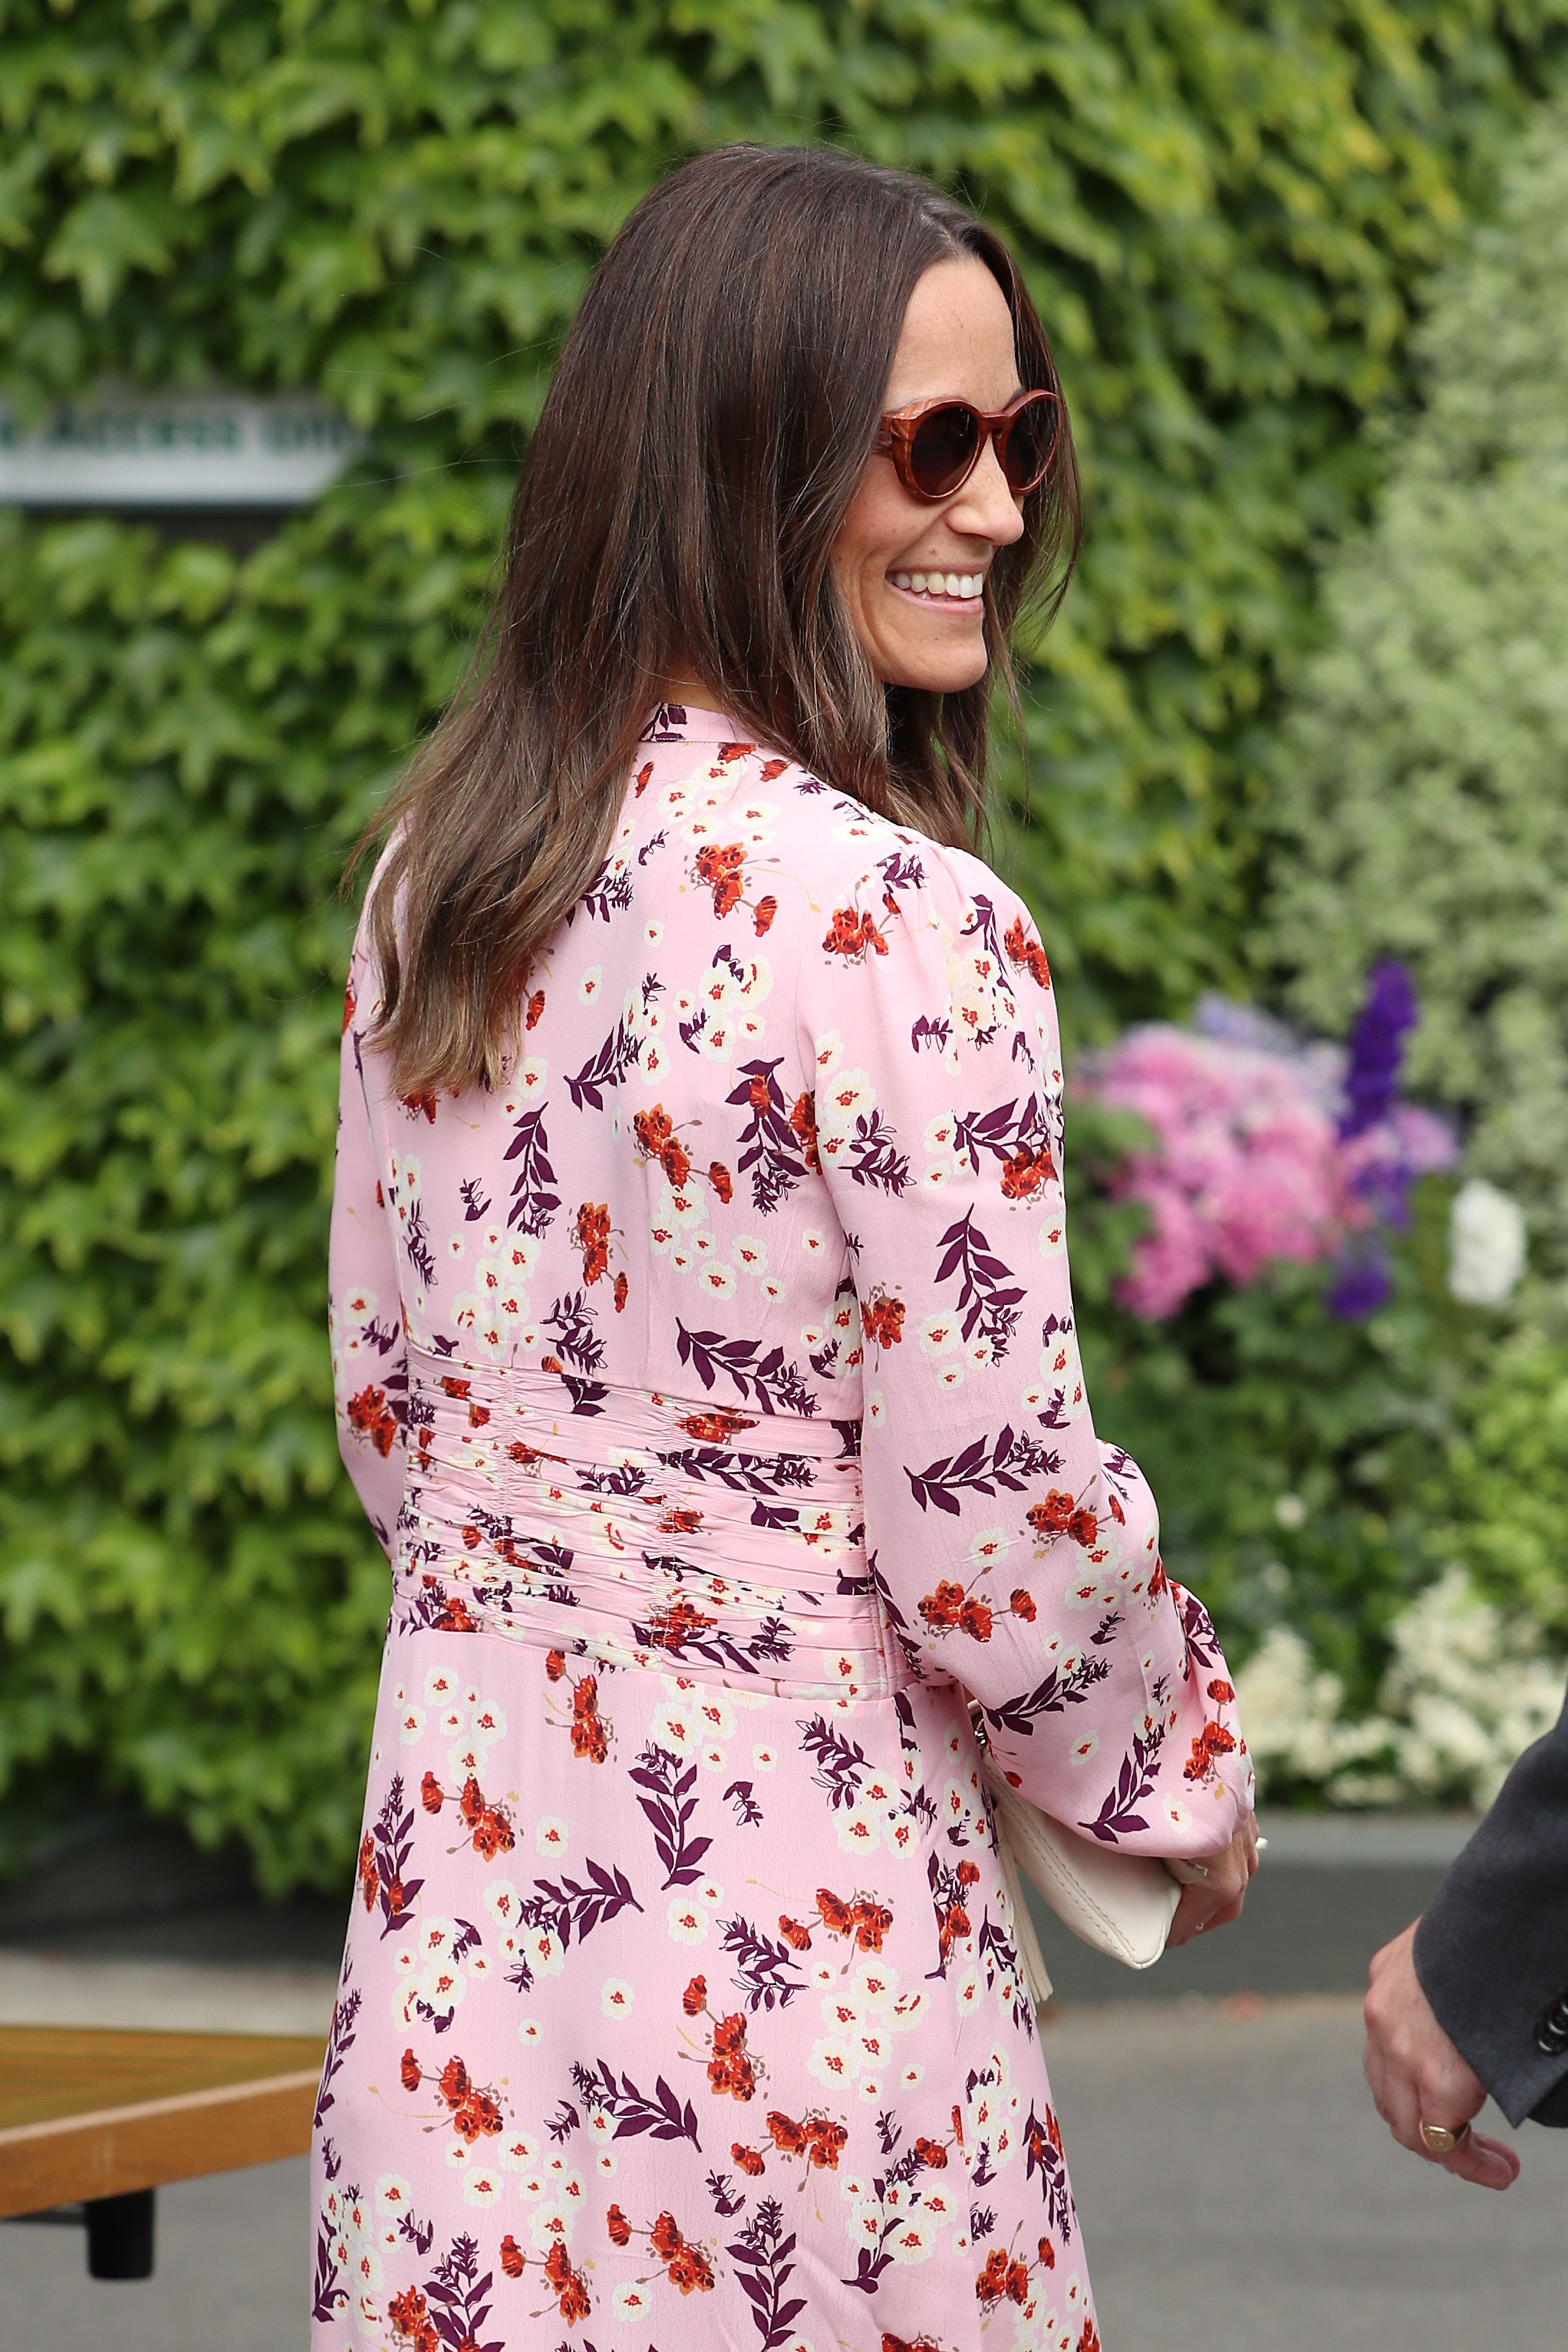 Il back to office di Pippa Middleton è una sinfonia rosso patriottico